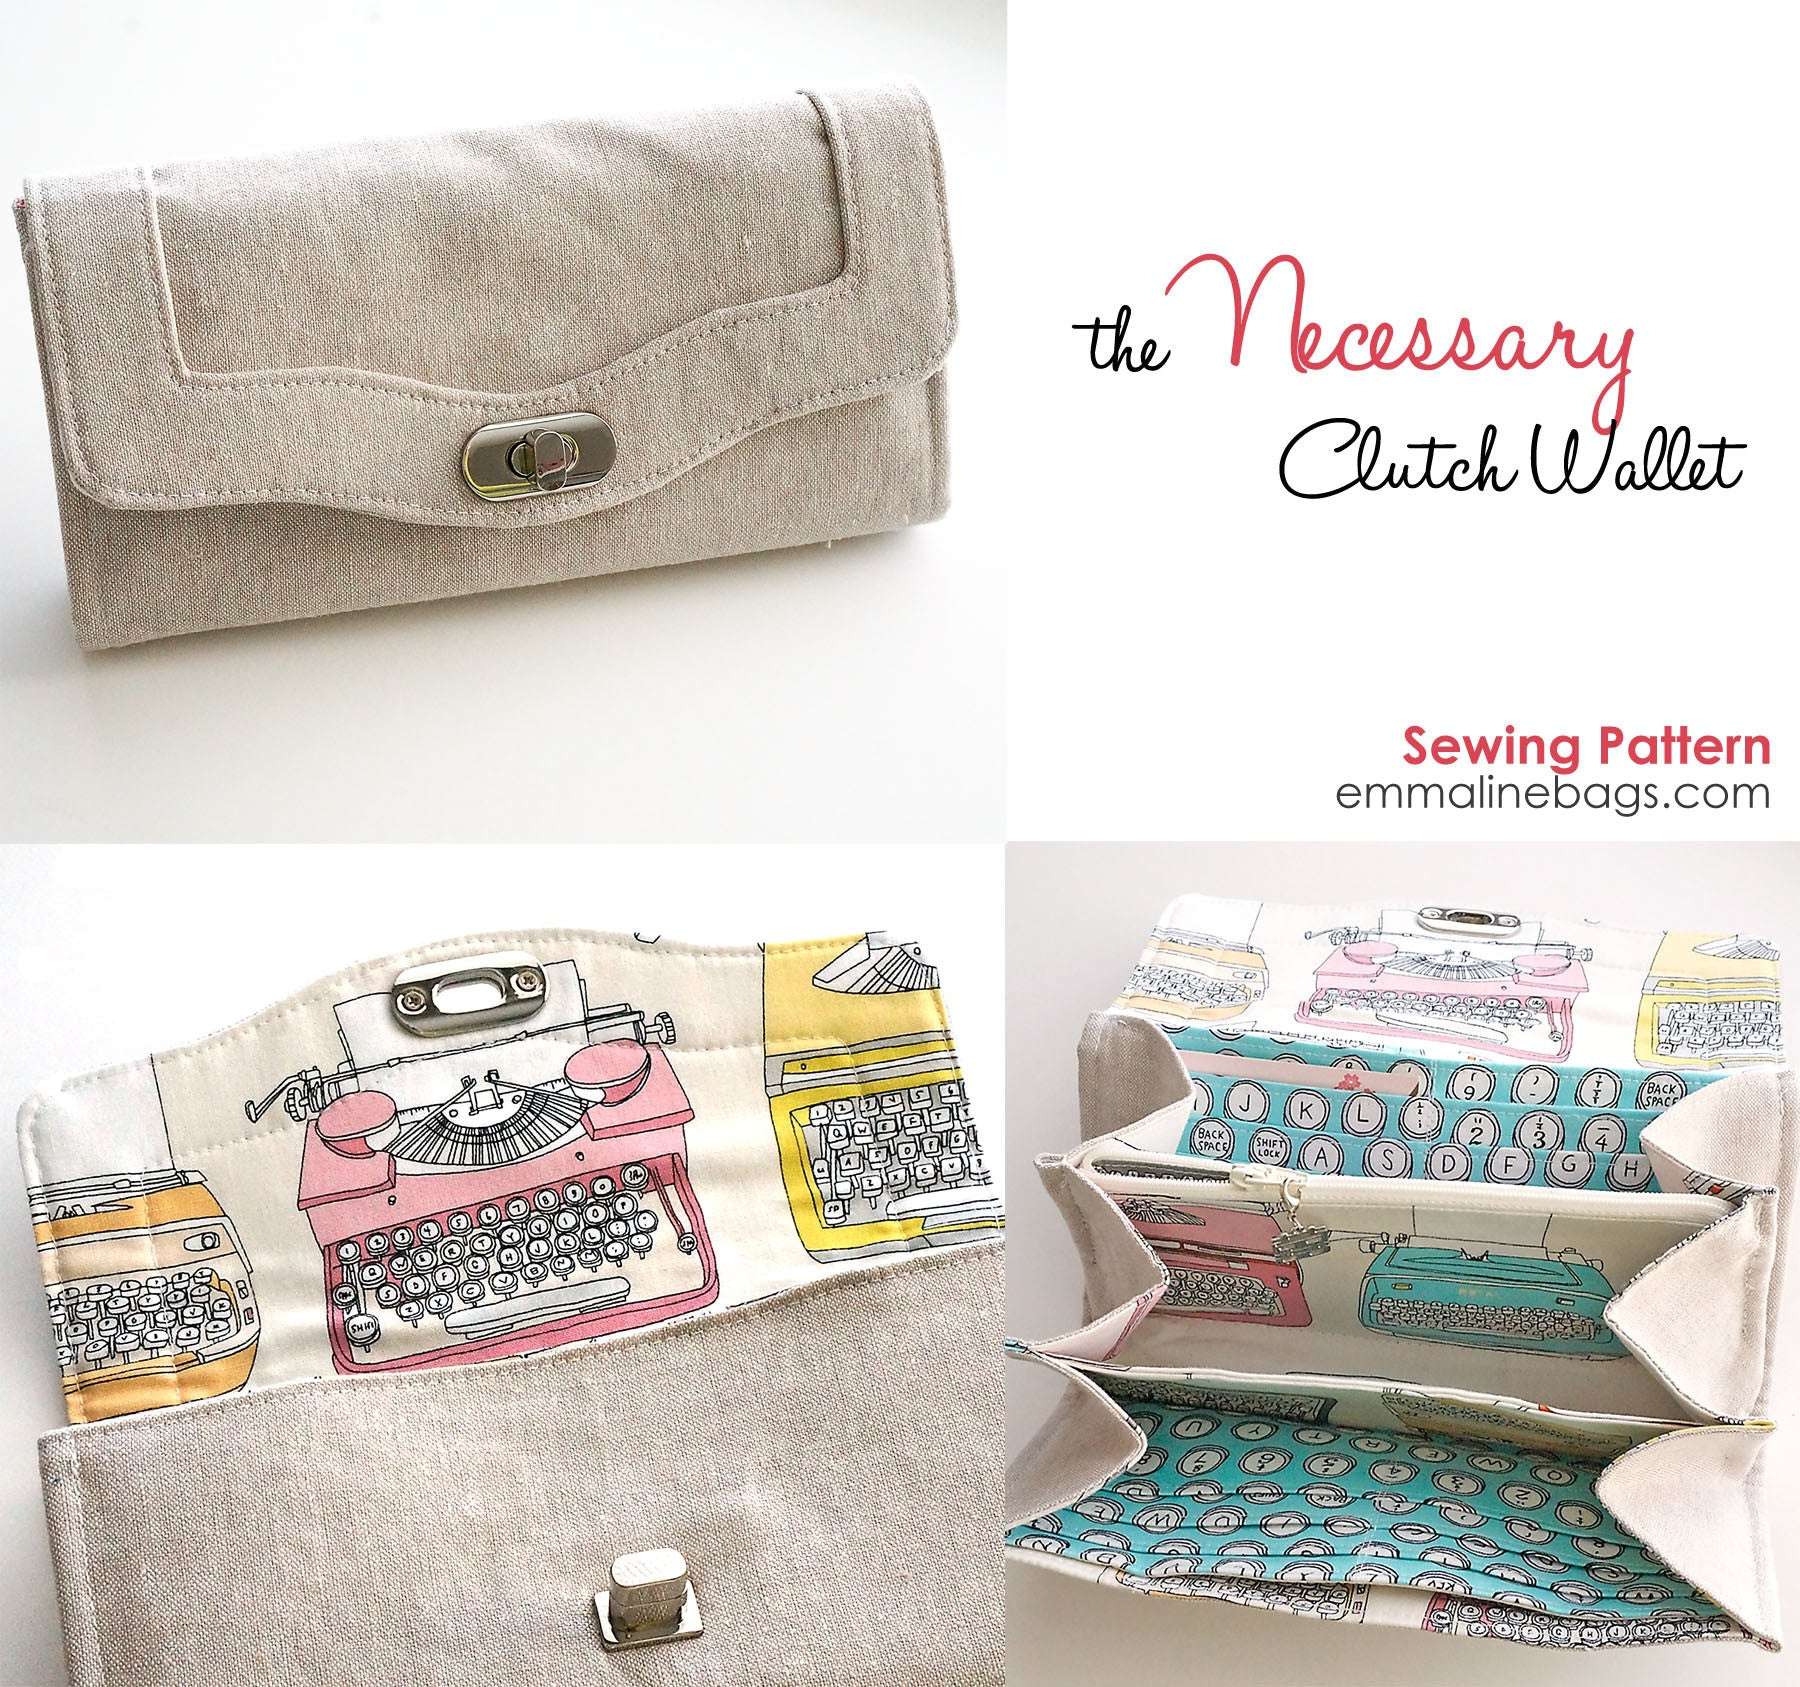 Necessary clutch wallet paper pattern by emmaline bags paper pattern the necessary clutch wallet jeuxipadfo Image collections